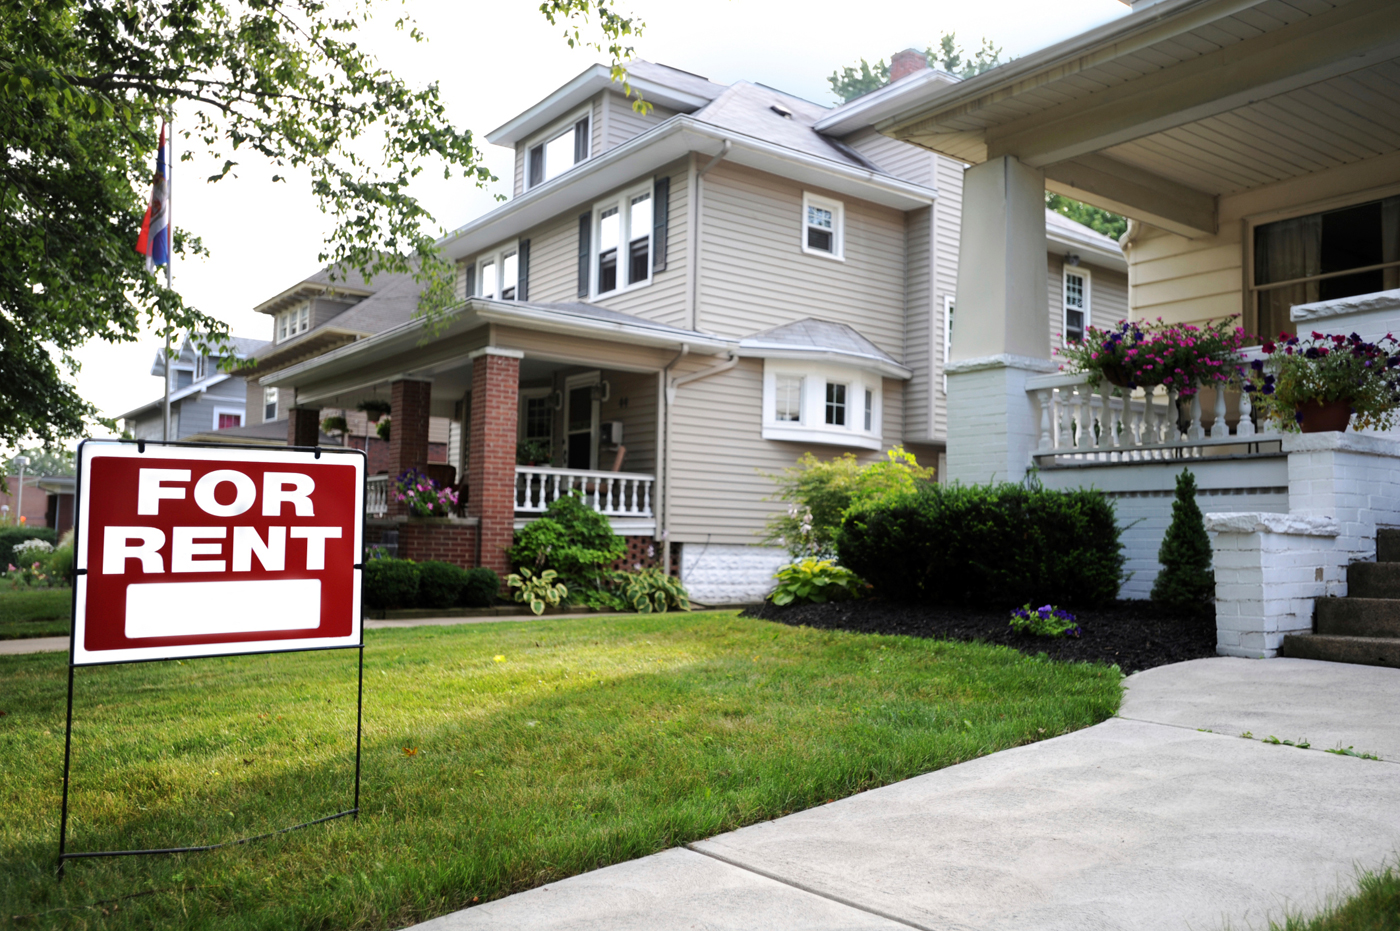 Portland Metro Homes For Rent - Property Management Systems